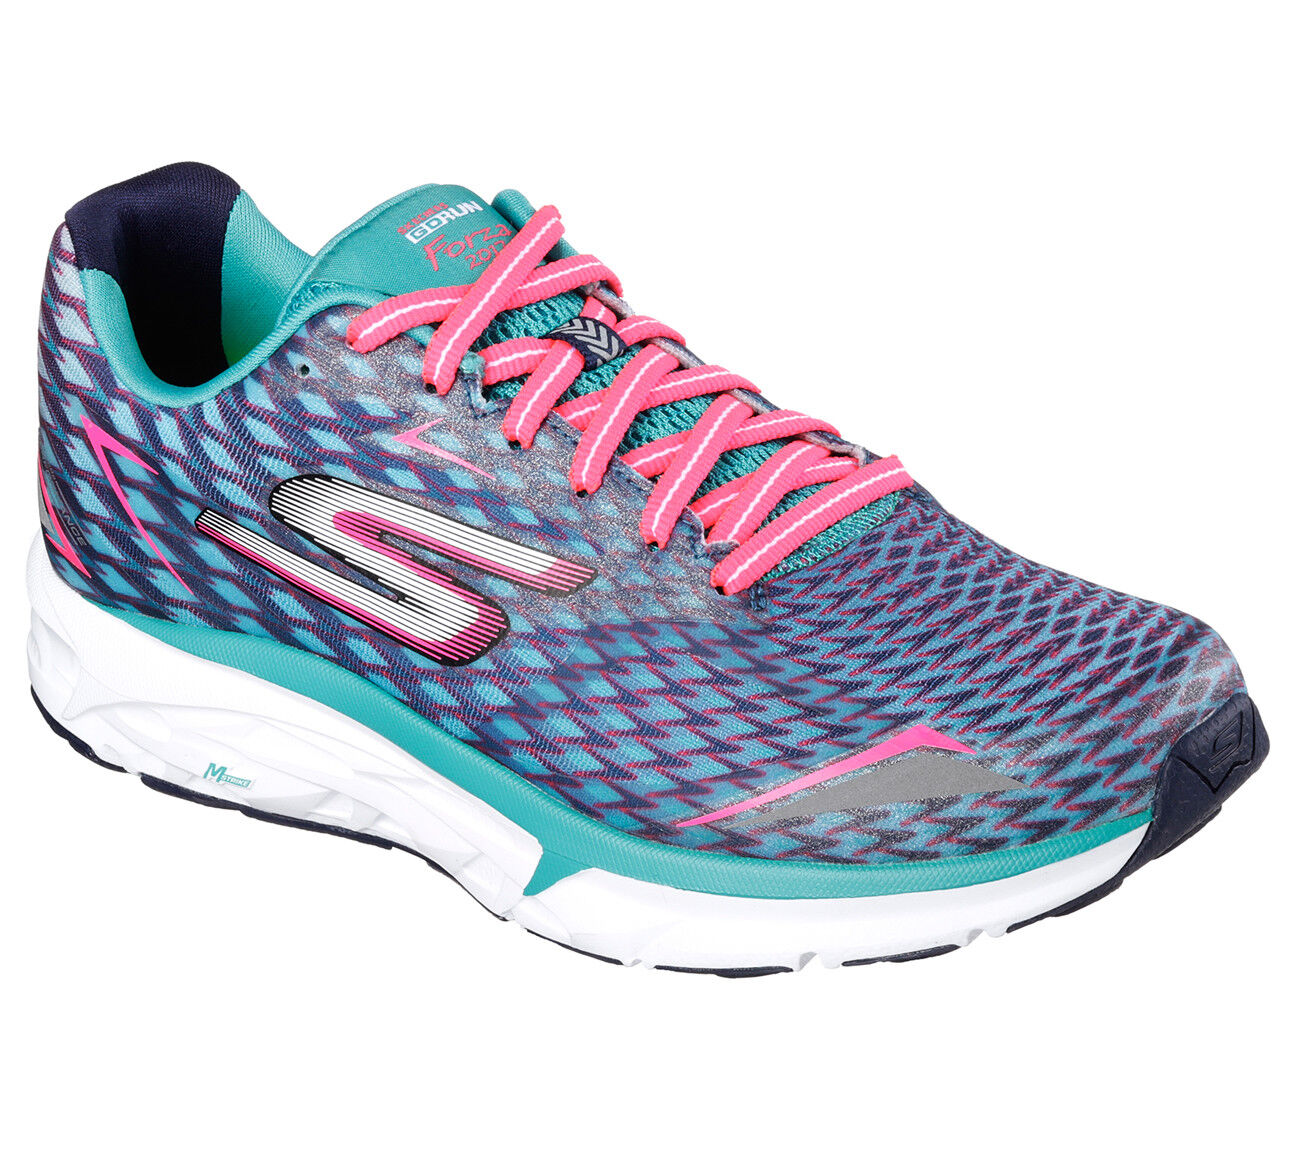 best sneakers best quality new product Details about Skechers GoRun Forza 2 Trainers Womens Sports Running Memory  Foam Training Shoes